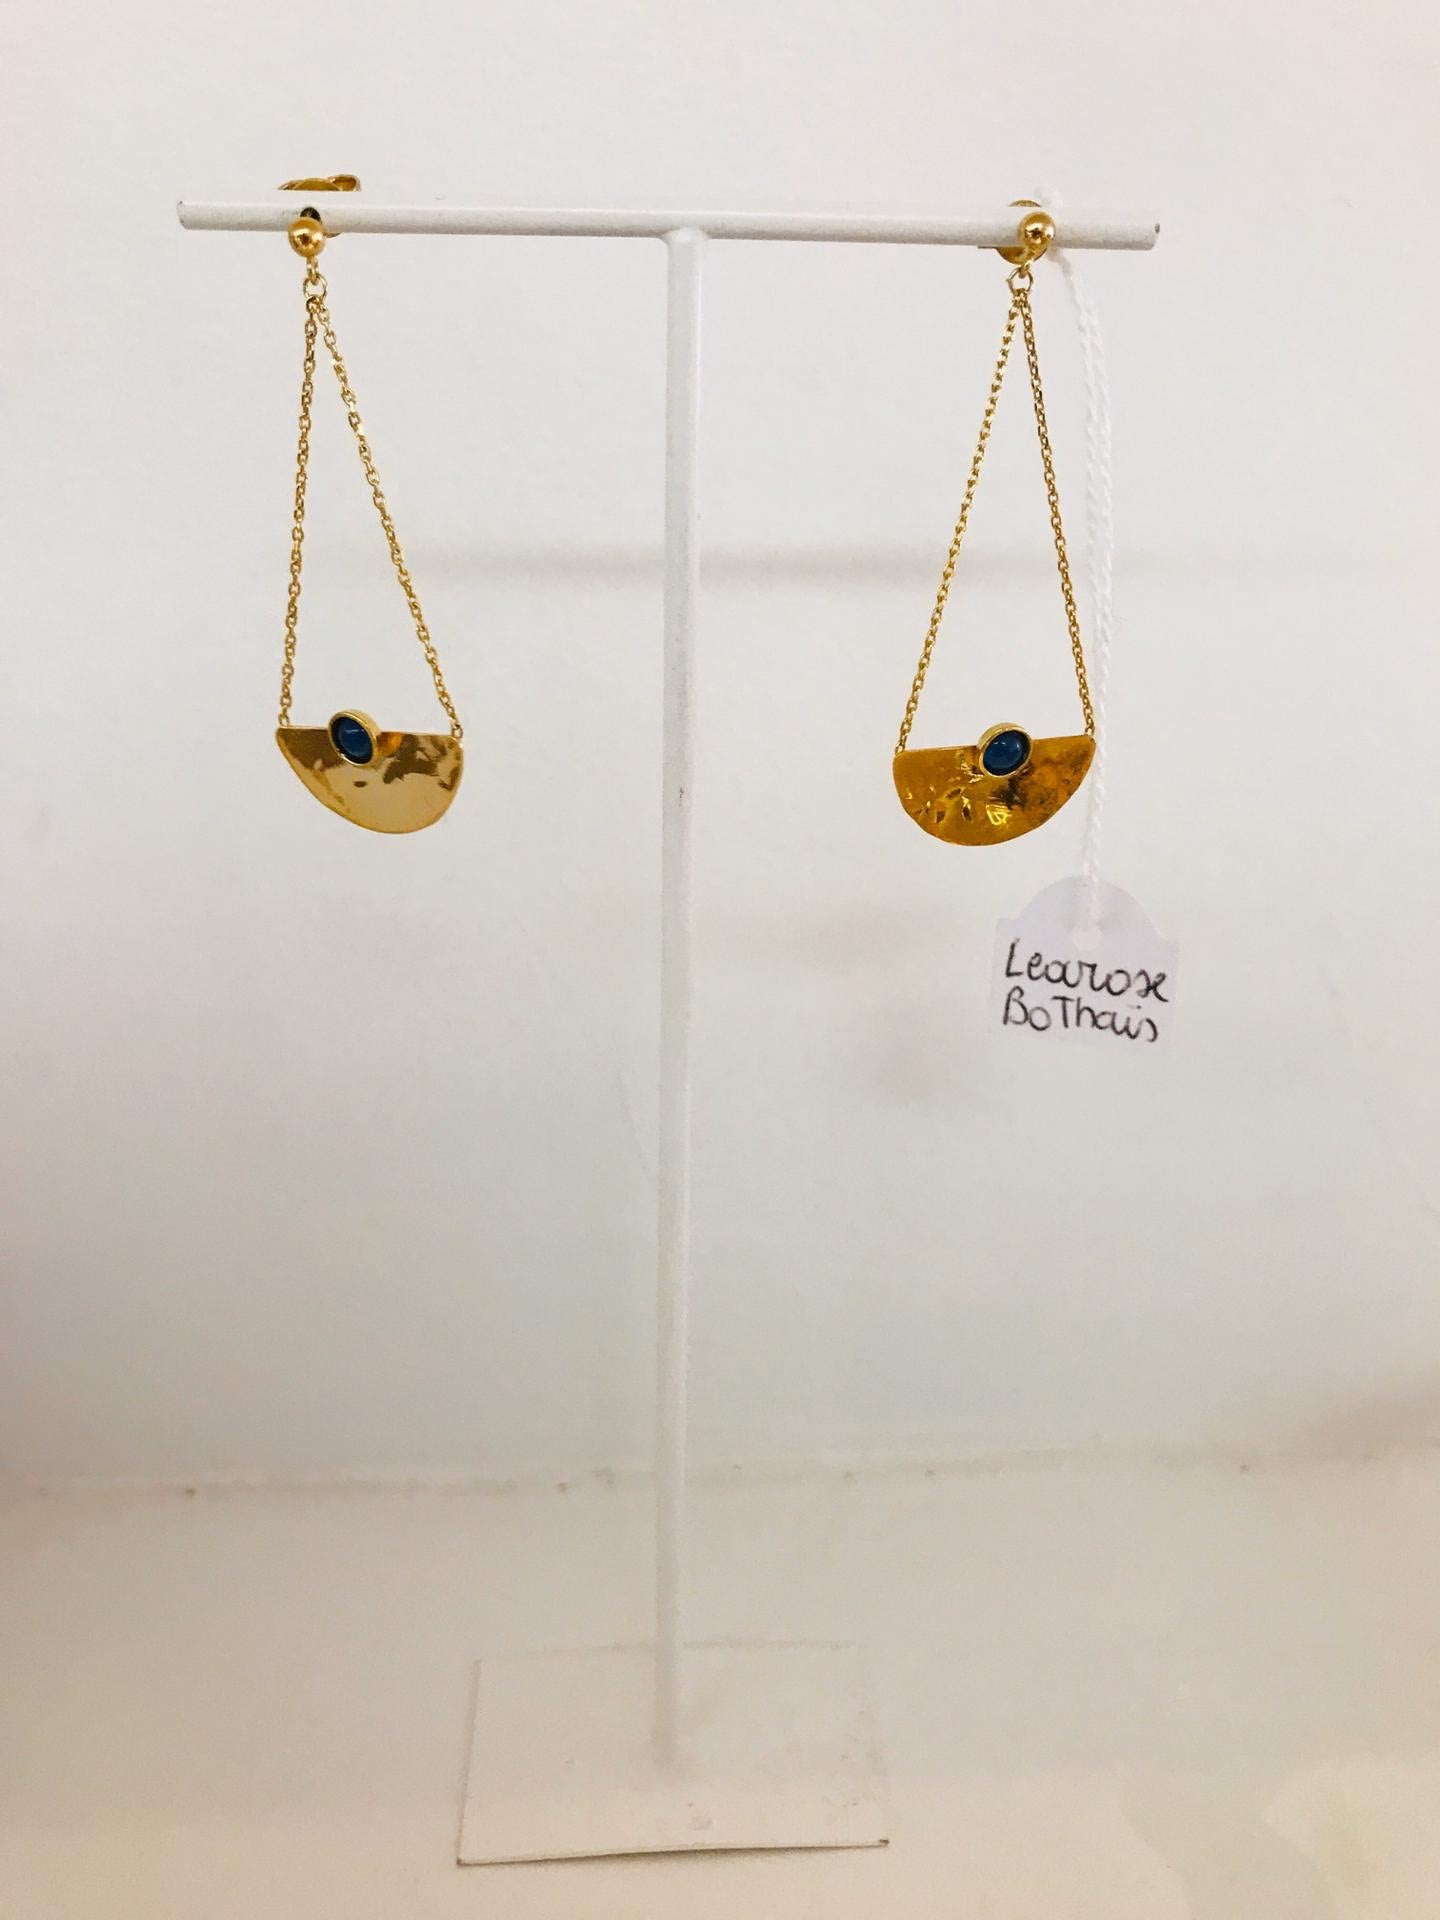 Learose - gold plated earrings with gemstone